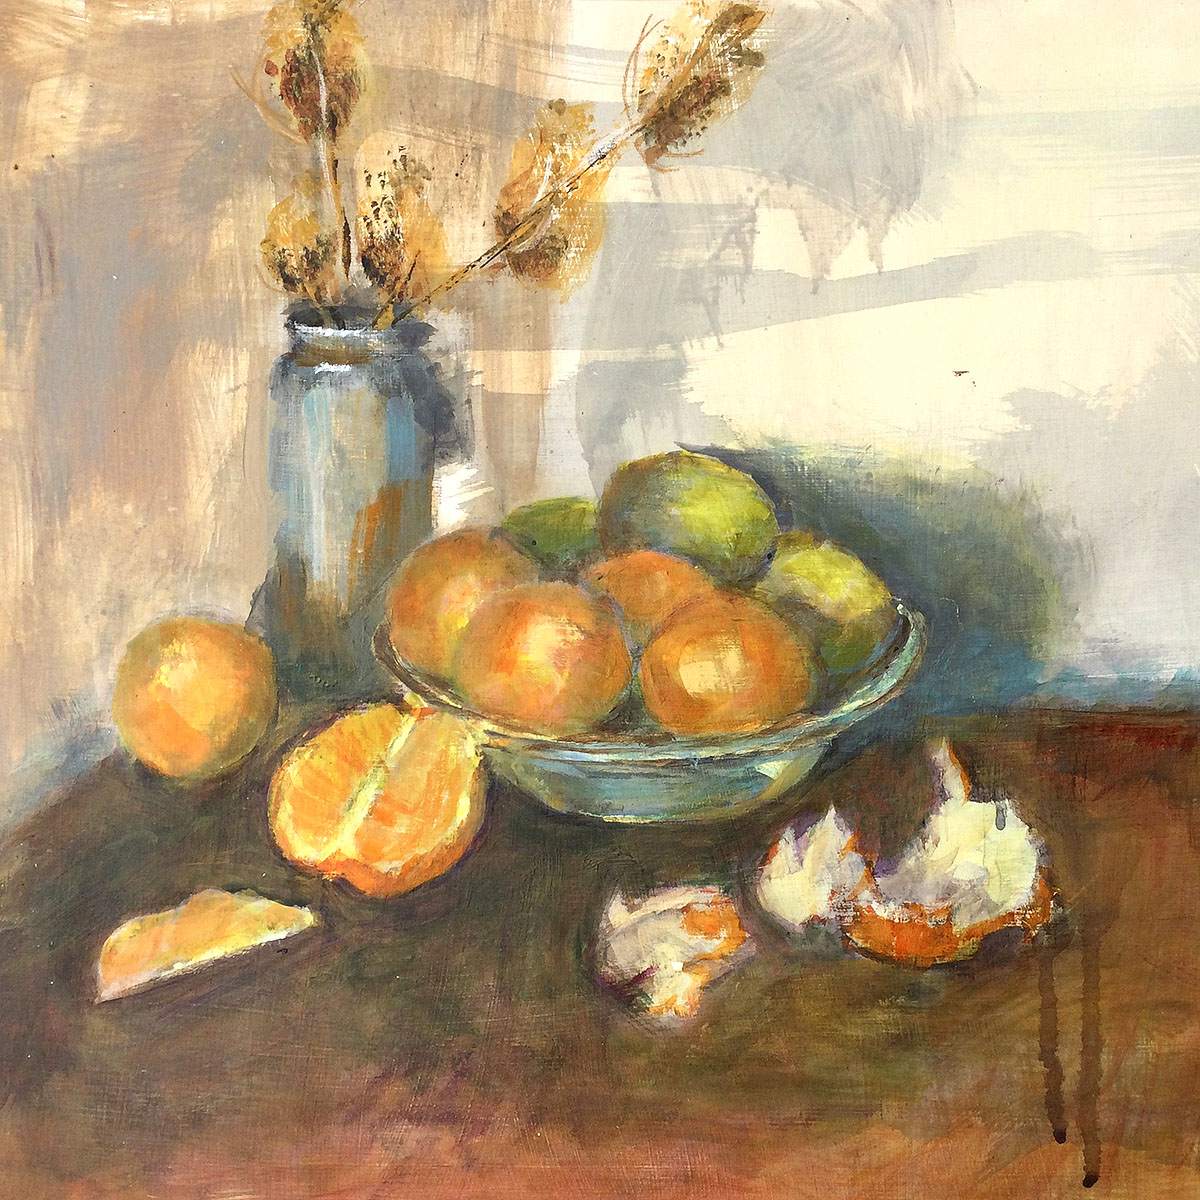 Mary Lambie, 'Fruit Bowl', acrylic on paper and cradled board